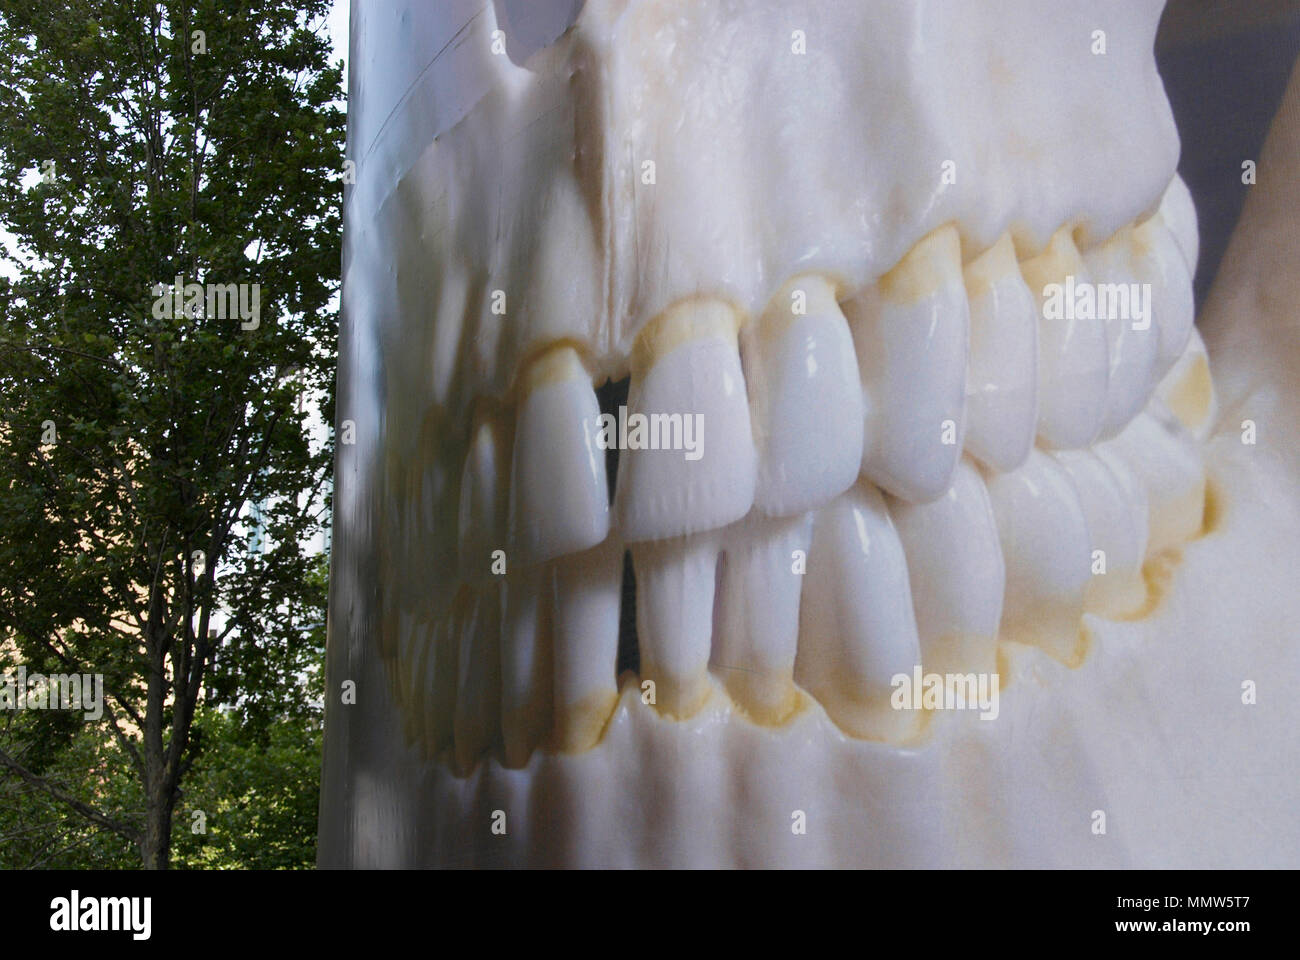 48-sheet poster site of skull with a big mouthful of teeth grinning at the side of a road in Melbourne Australia - Stock Image